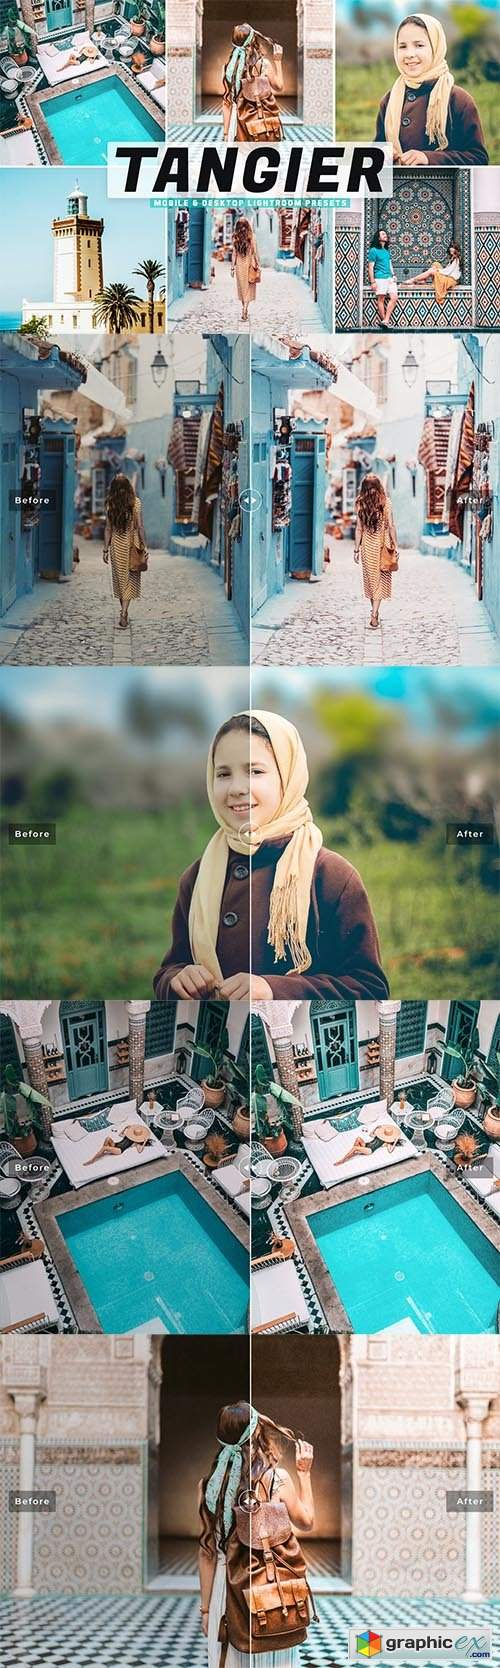 Tangier Mobile & Desktop Lightroom Presets